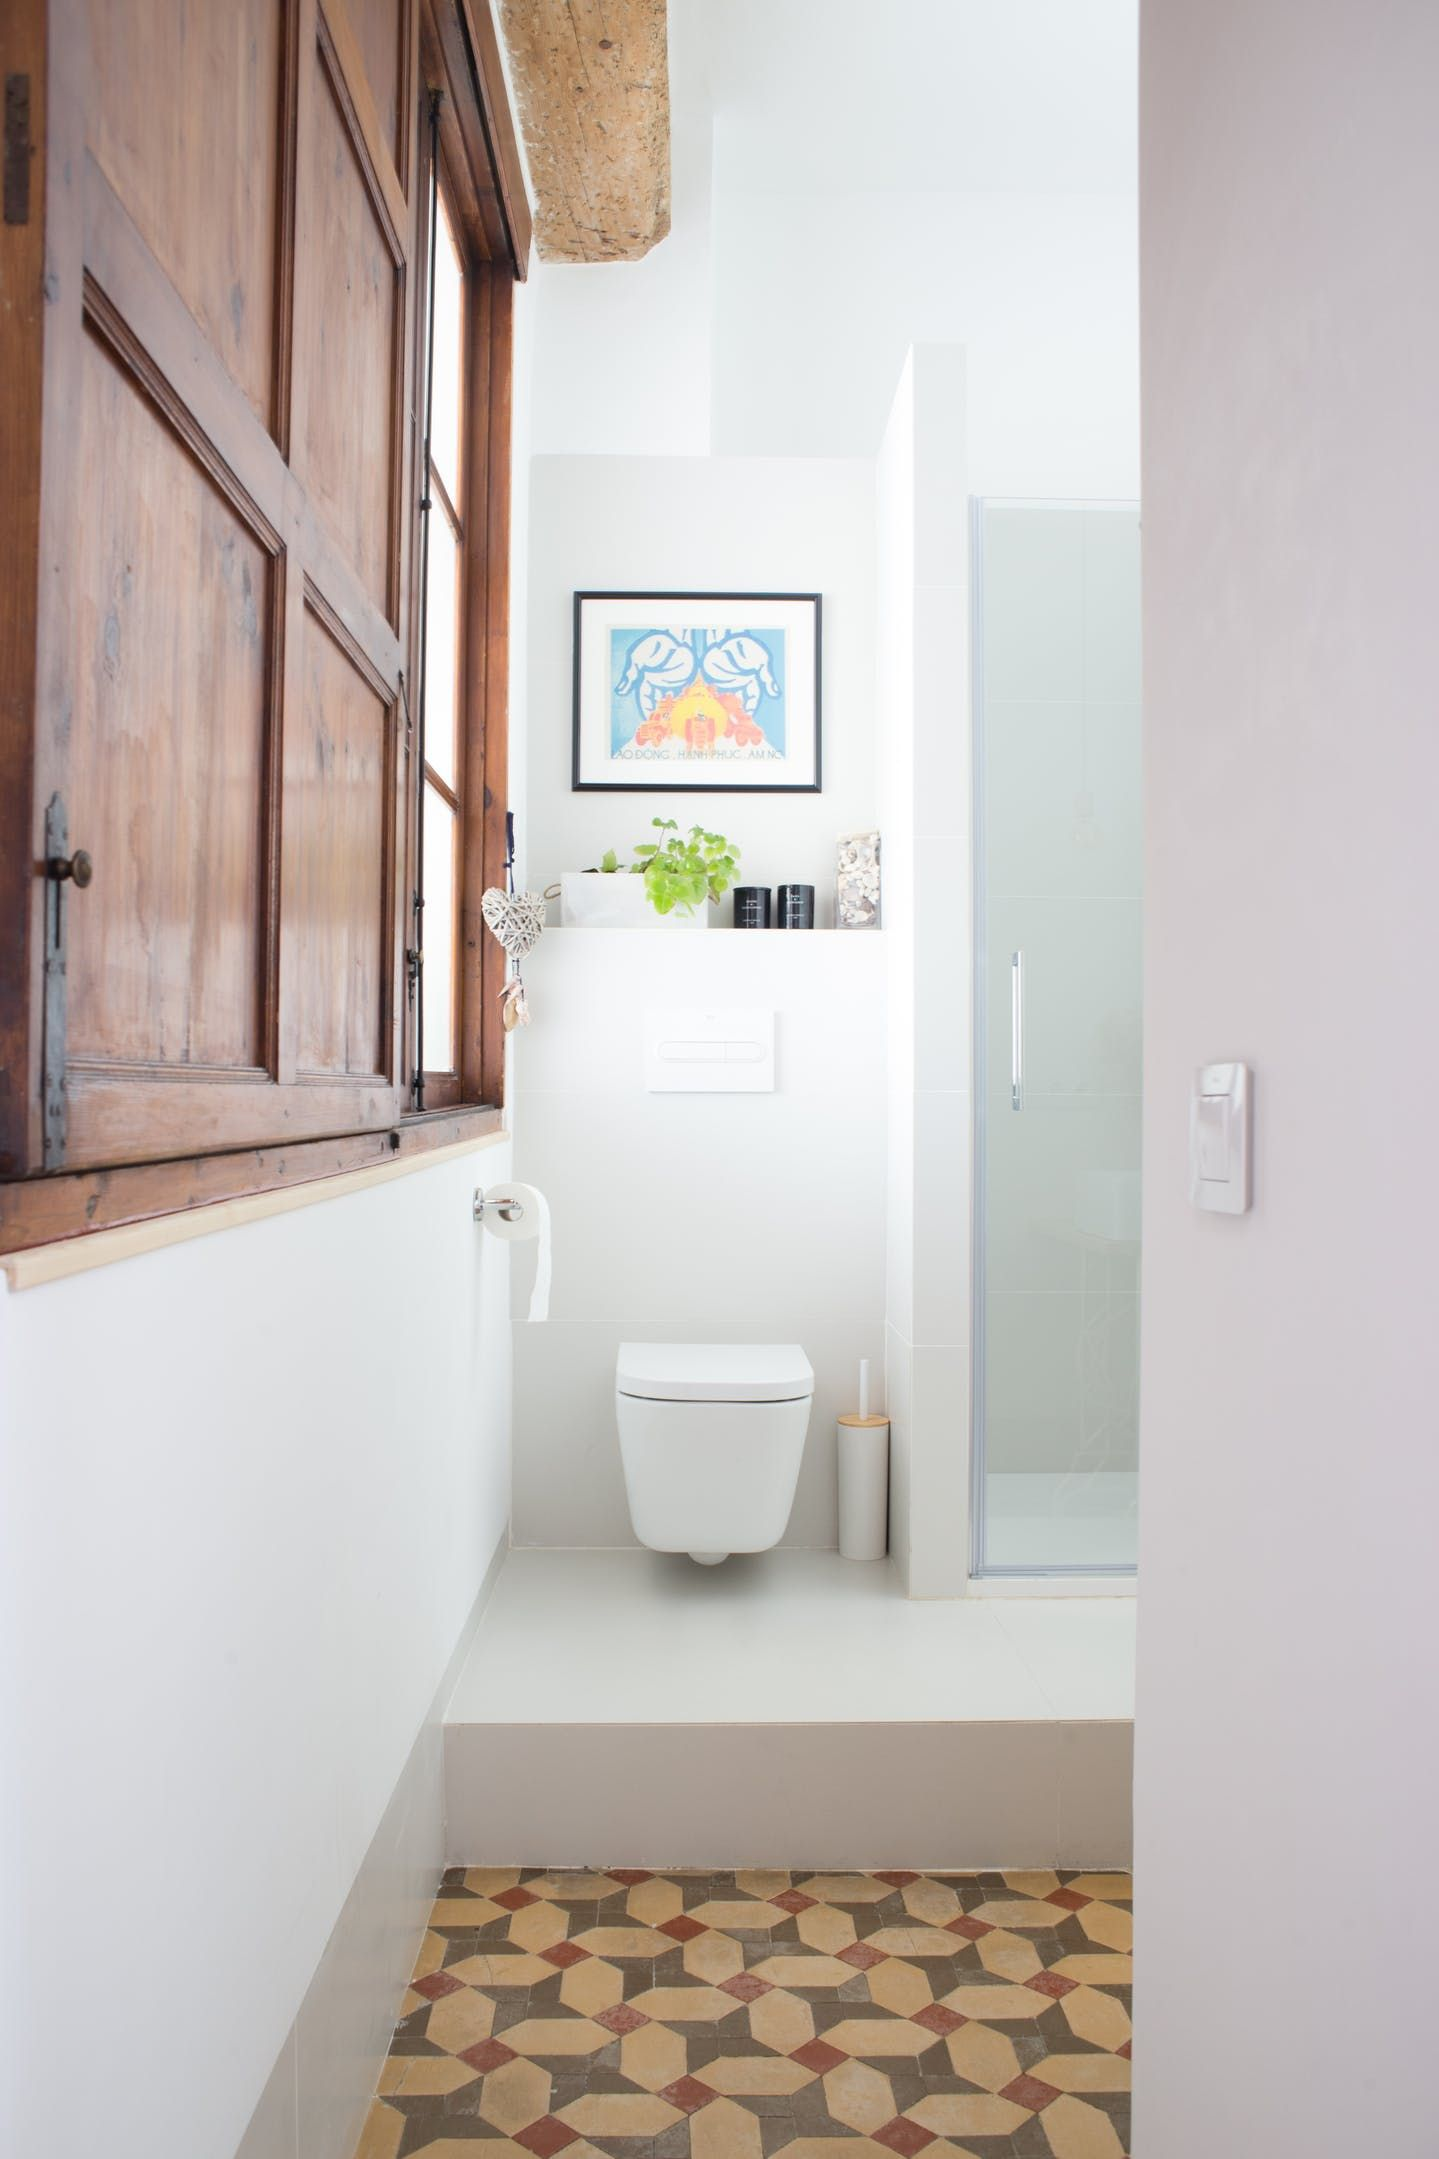 Gravity Home: Light bathroom with original details in a light ...